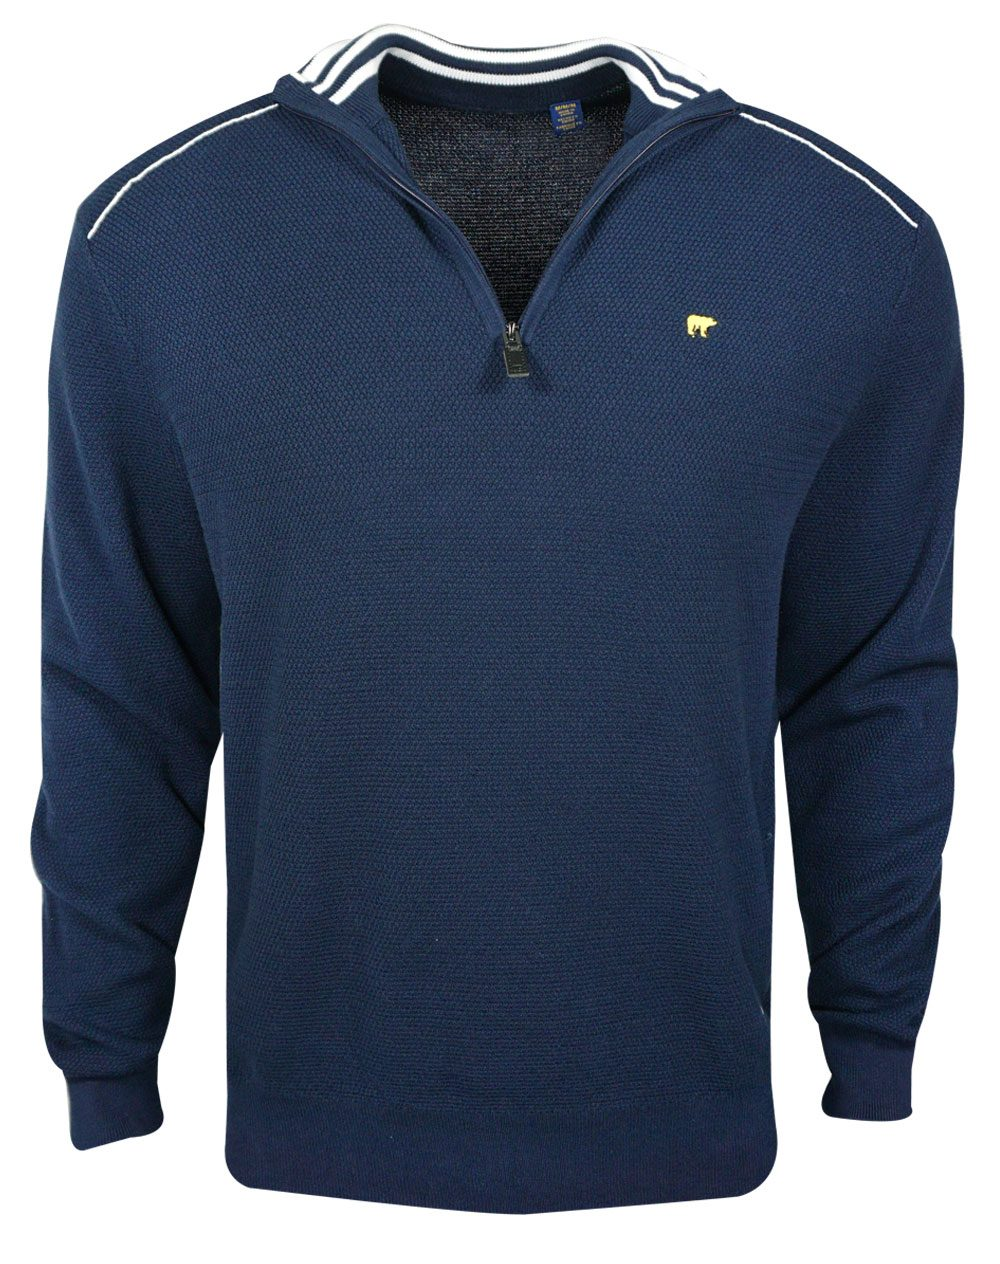 Jack Nicklaus Golf 1 4 Zip Texture Sweater image